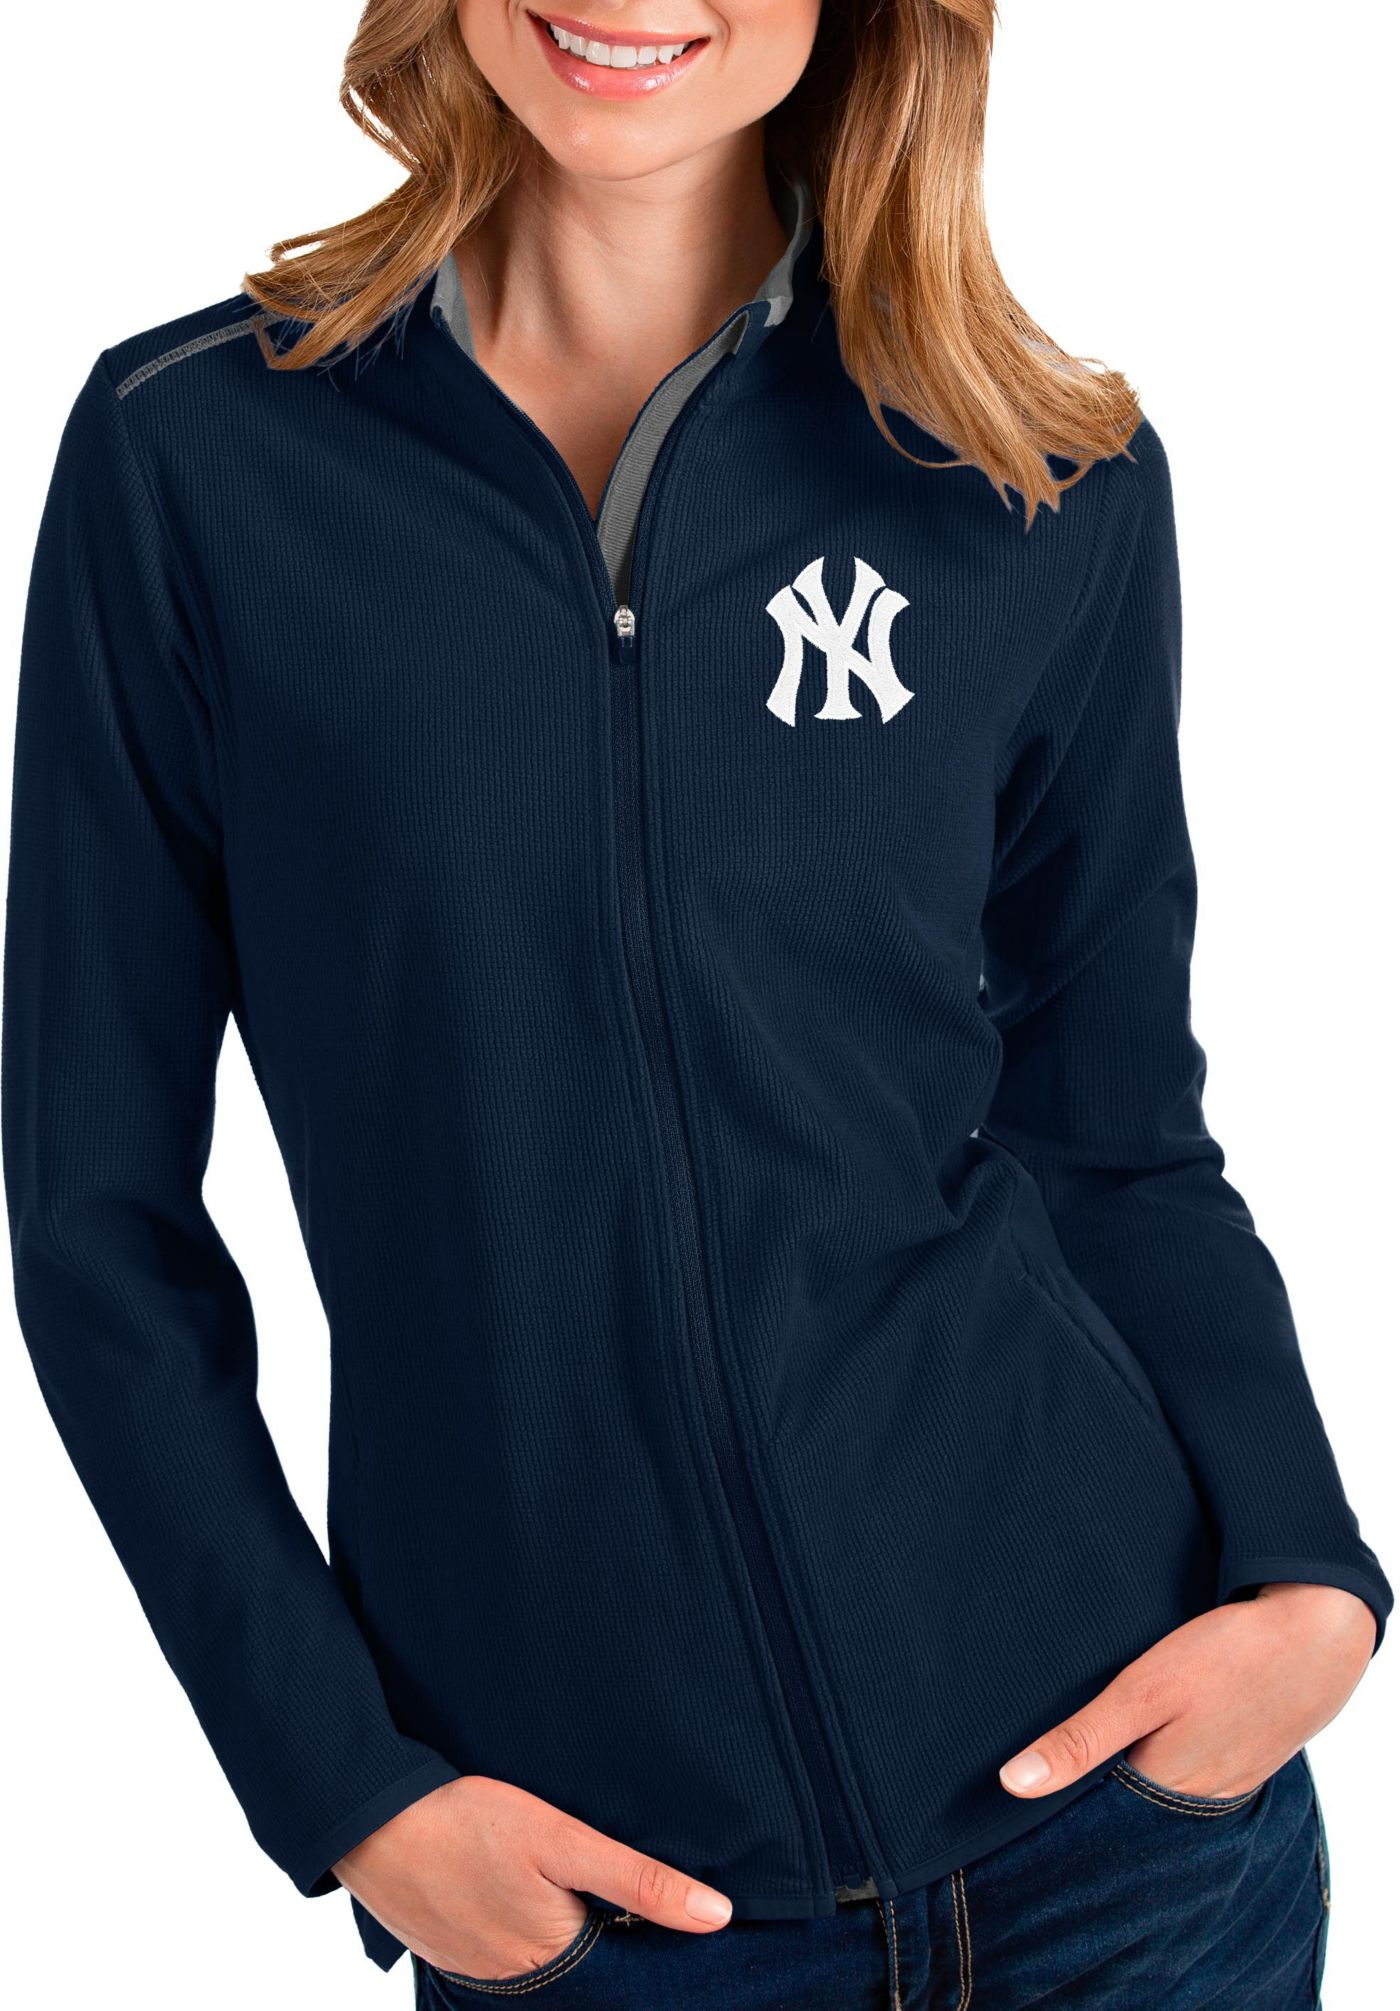 Antigua Women's New York Yankees Navy Glacier Full-Zip Jacket